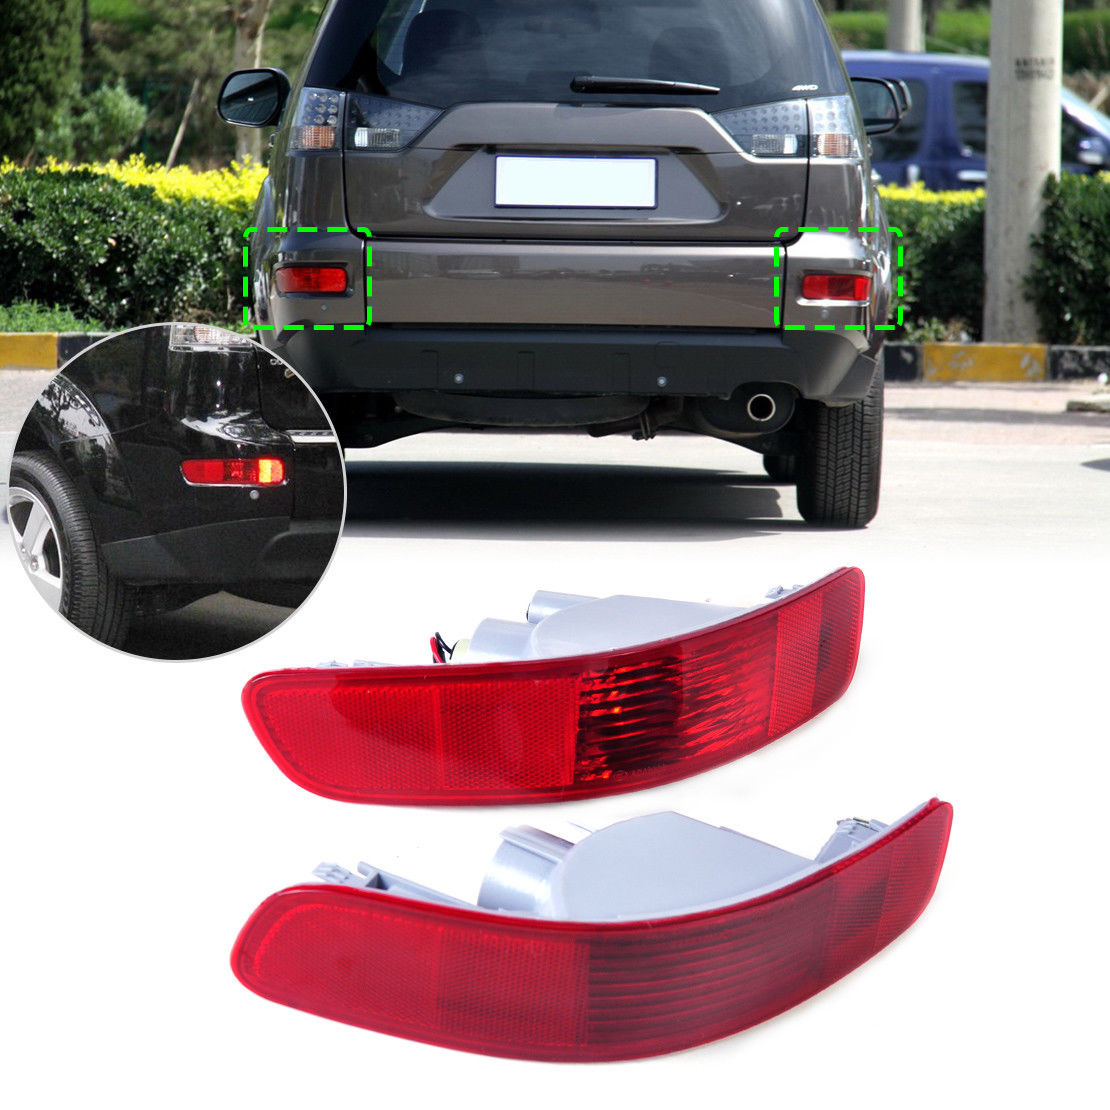 1PC Right Rear RED Tail Light Bumper Side Marker Reflector Housing Compatible with 2007-2012 Mitsubishi Outlander Peugeot 4007 Citro/ën C-Crosser